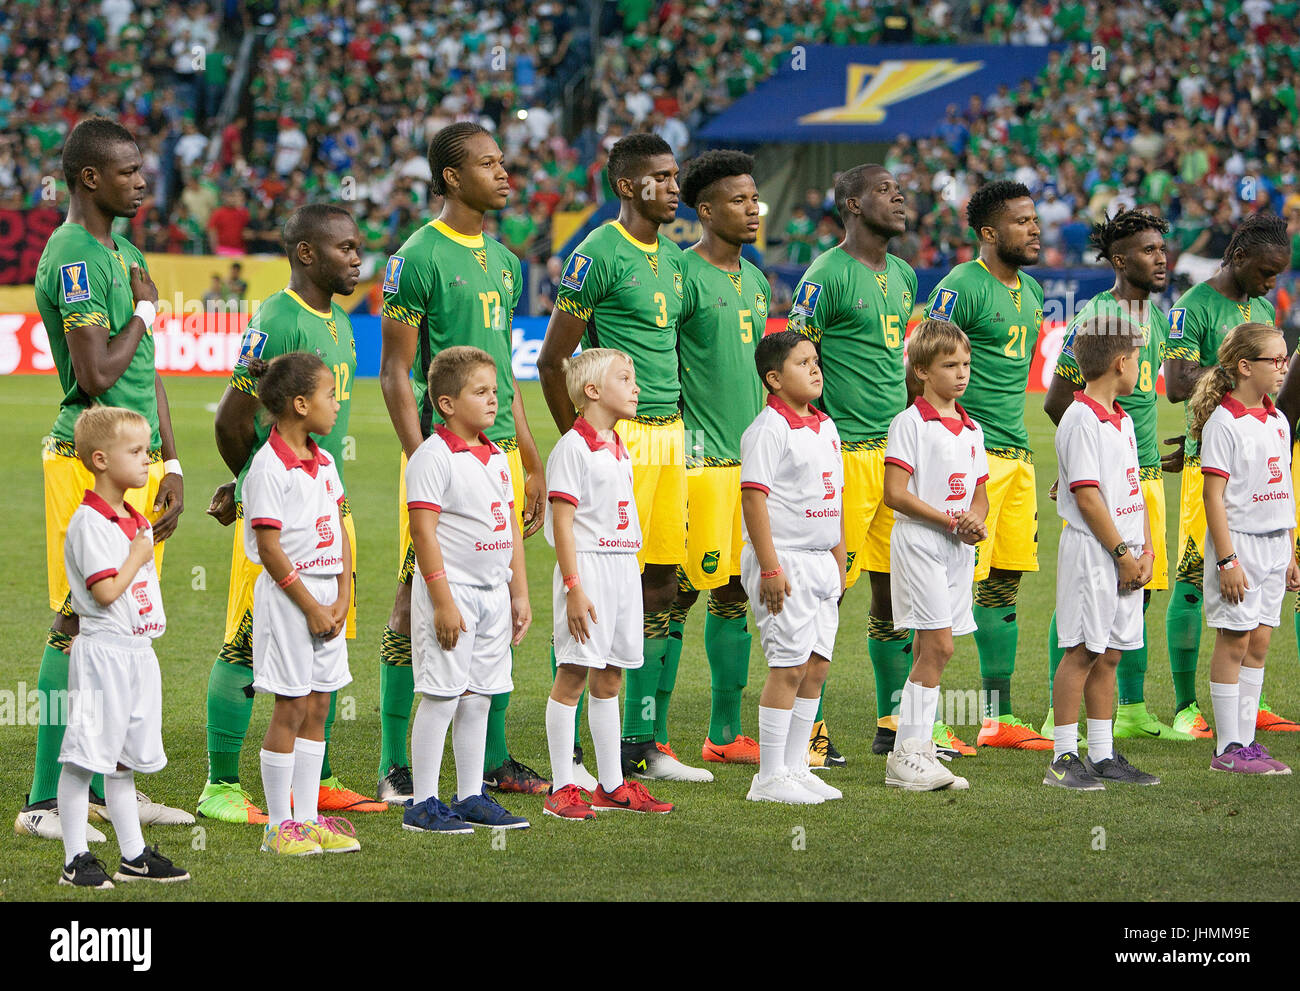 Denver, Colorado, USA. 13th July, 2017. The Jamacian Soccer team stand at attention during the National Anthem at - Stock Image